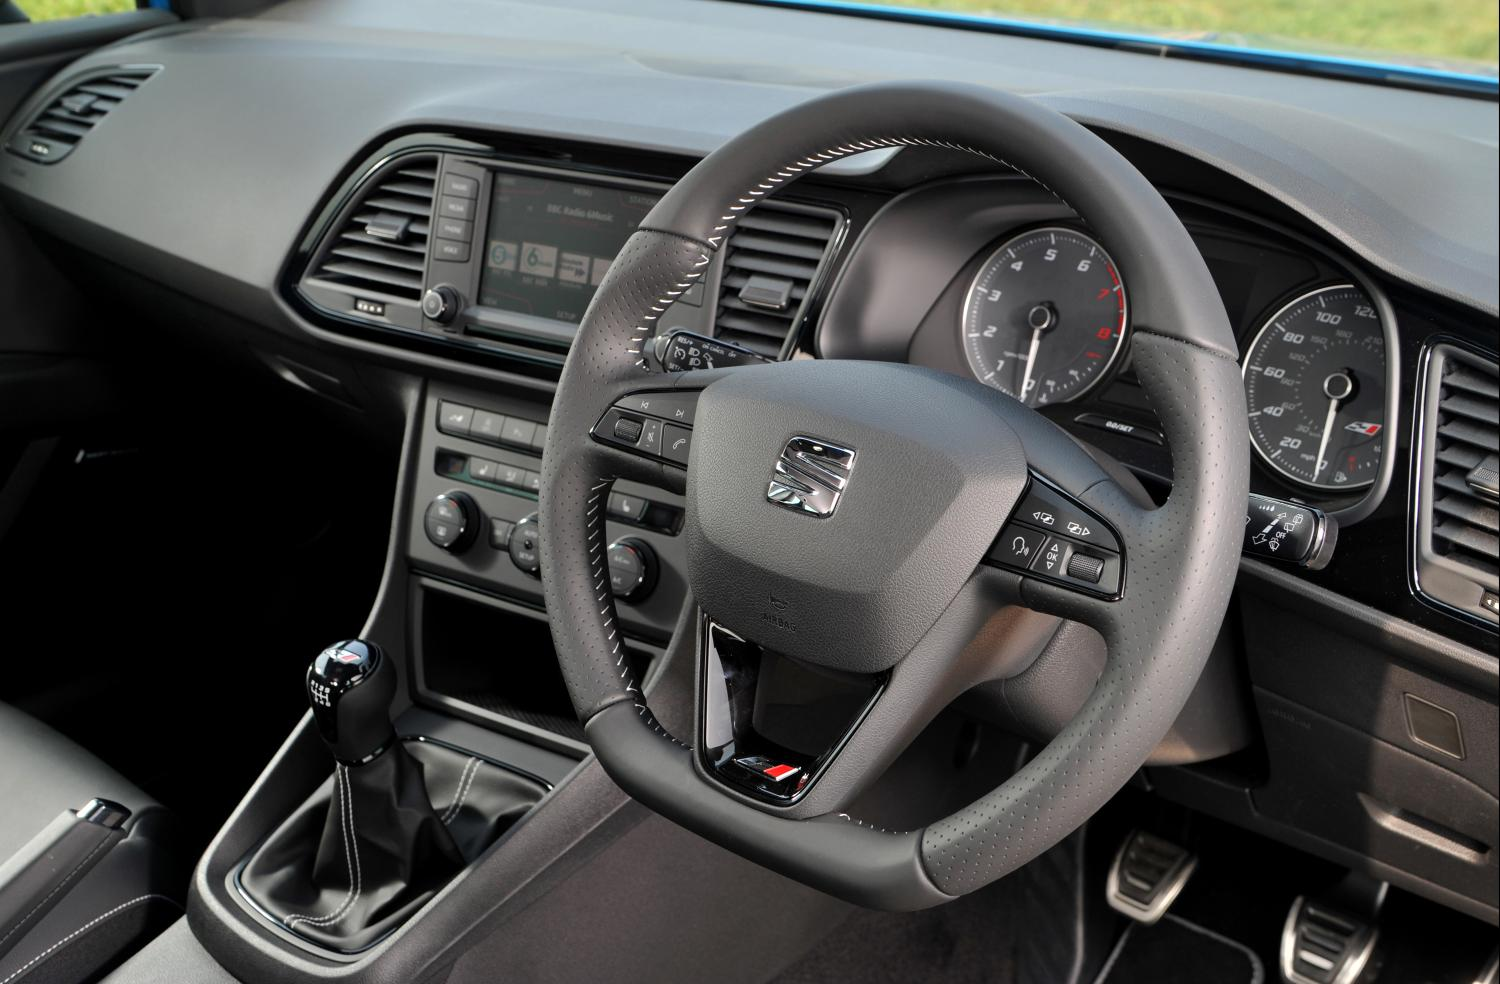 Flat-bottomed steering wheel aside, the front of the LEON is a comfortable, well laid out place to be